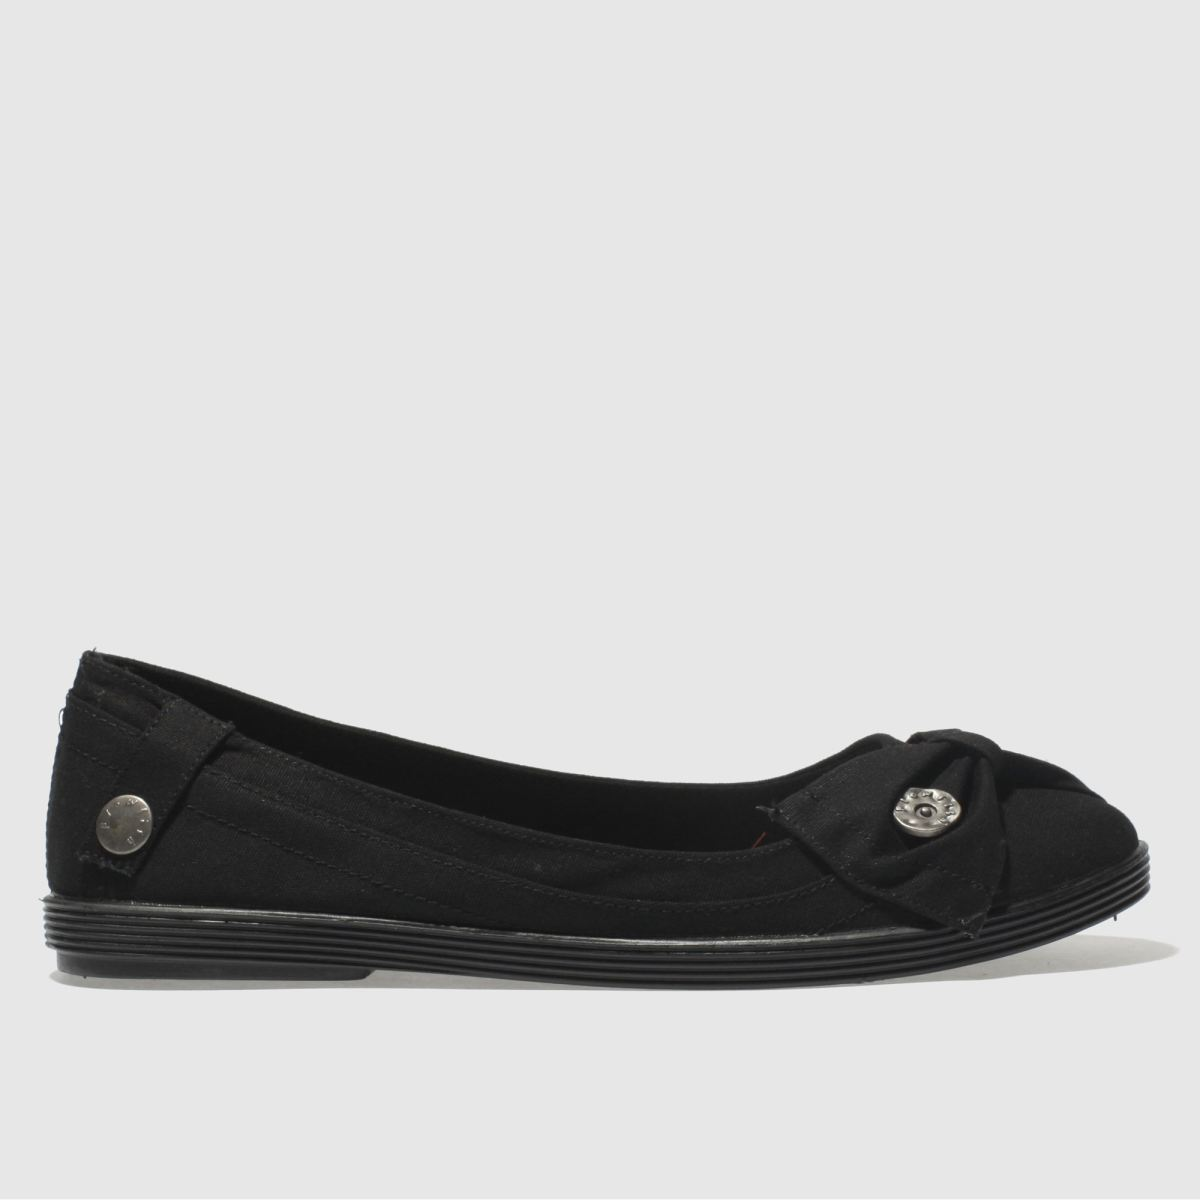 Blowfish Black Gimlet Flat Shoes